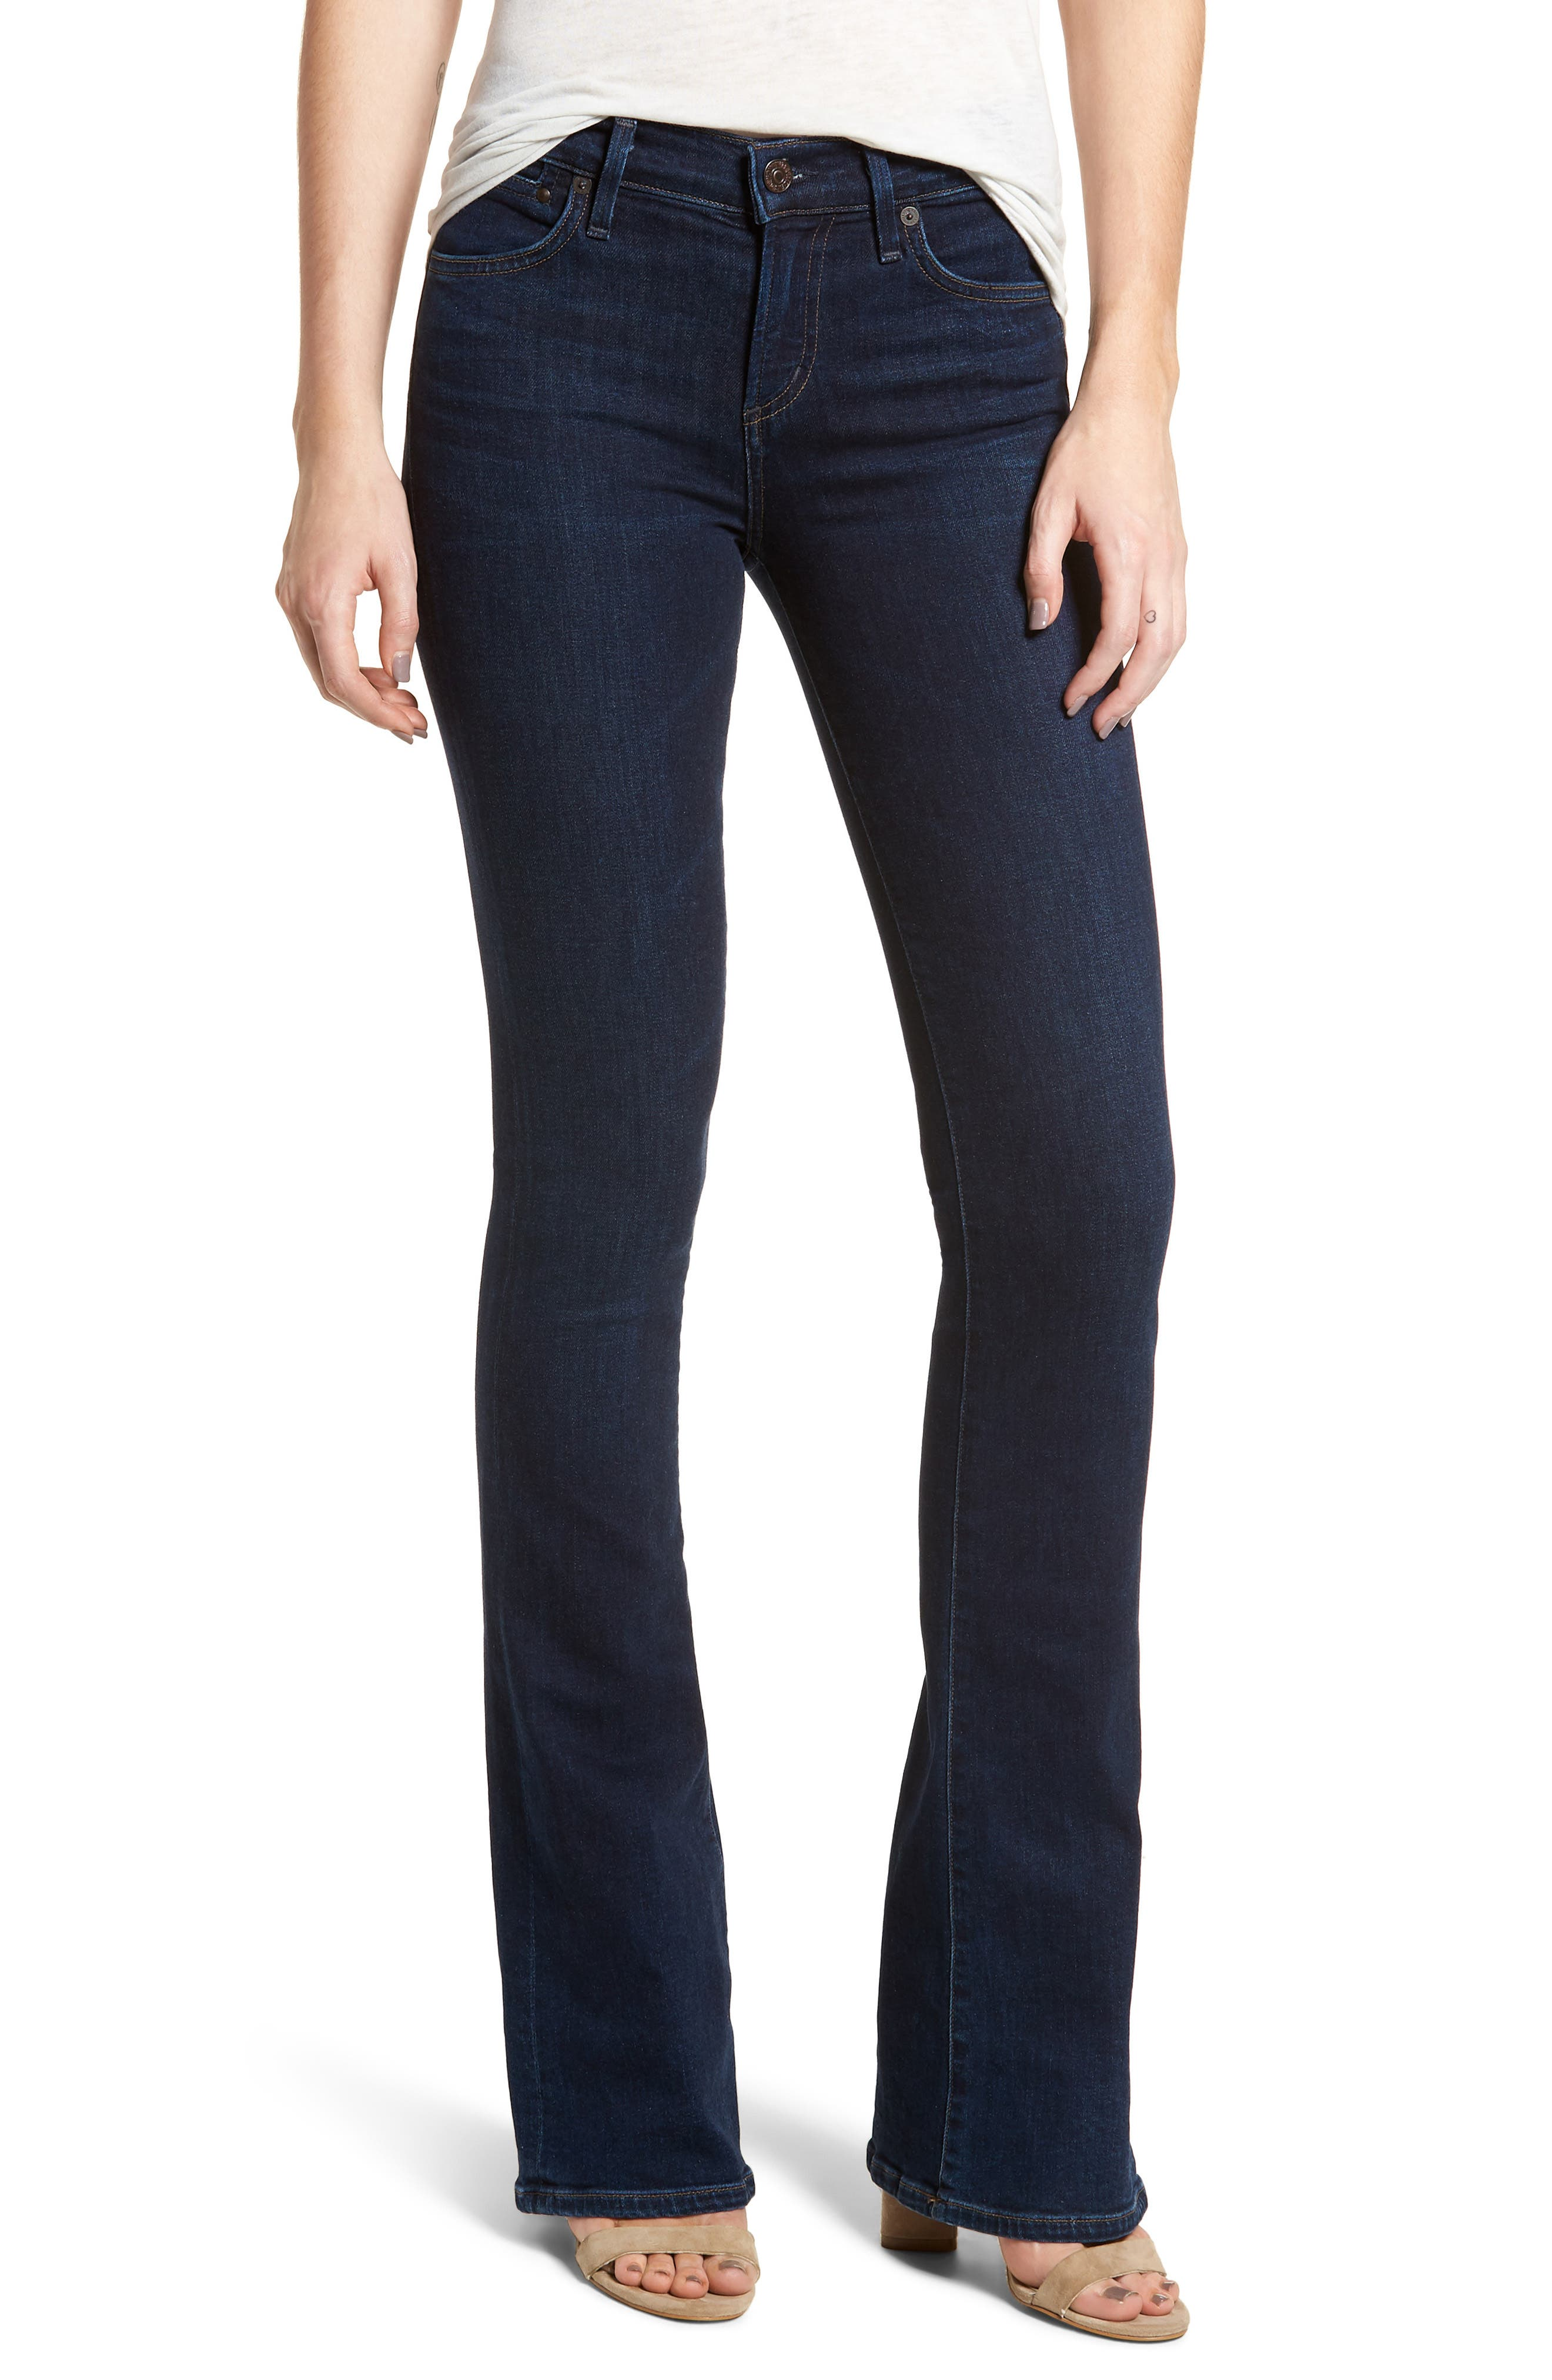 Emannuelle Bootcut Jeans,                             Main thumbnail 1, color,                             Galaxy